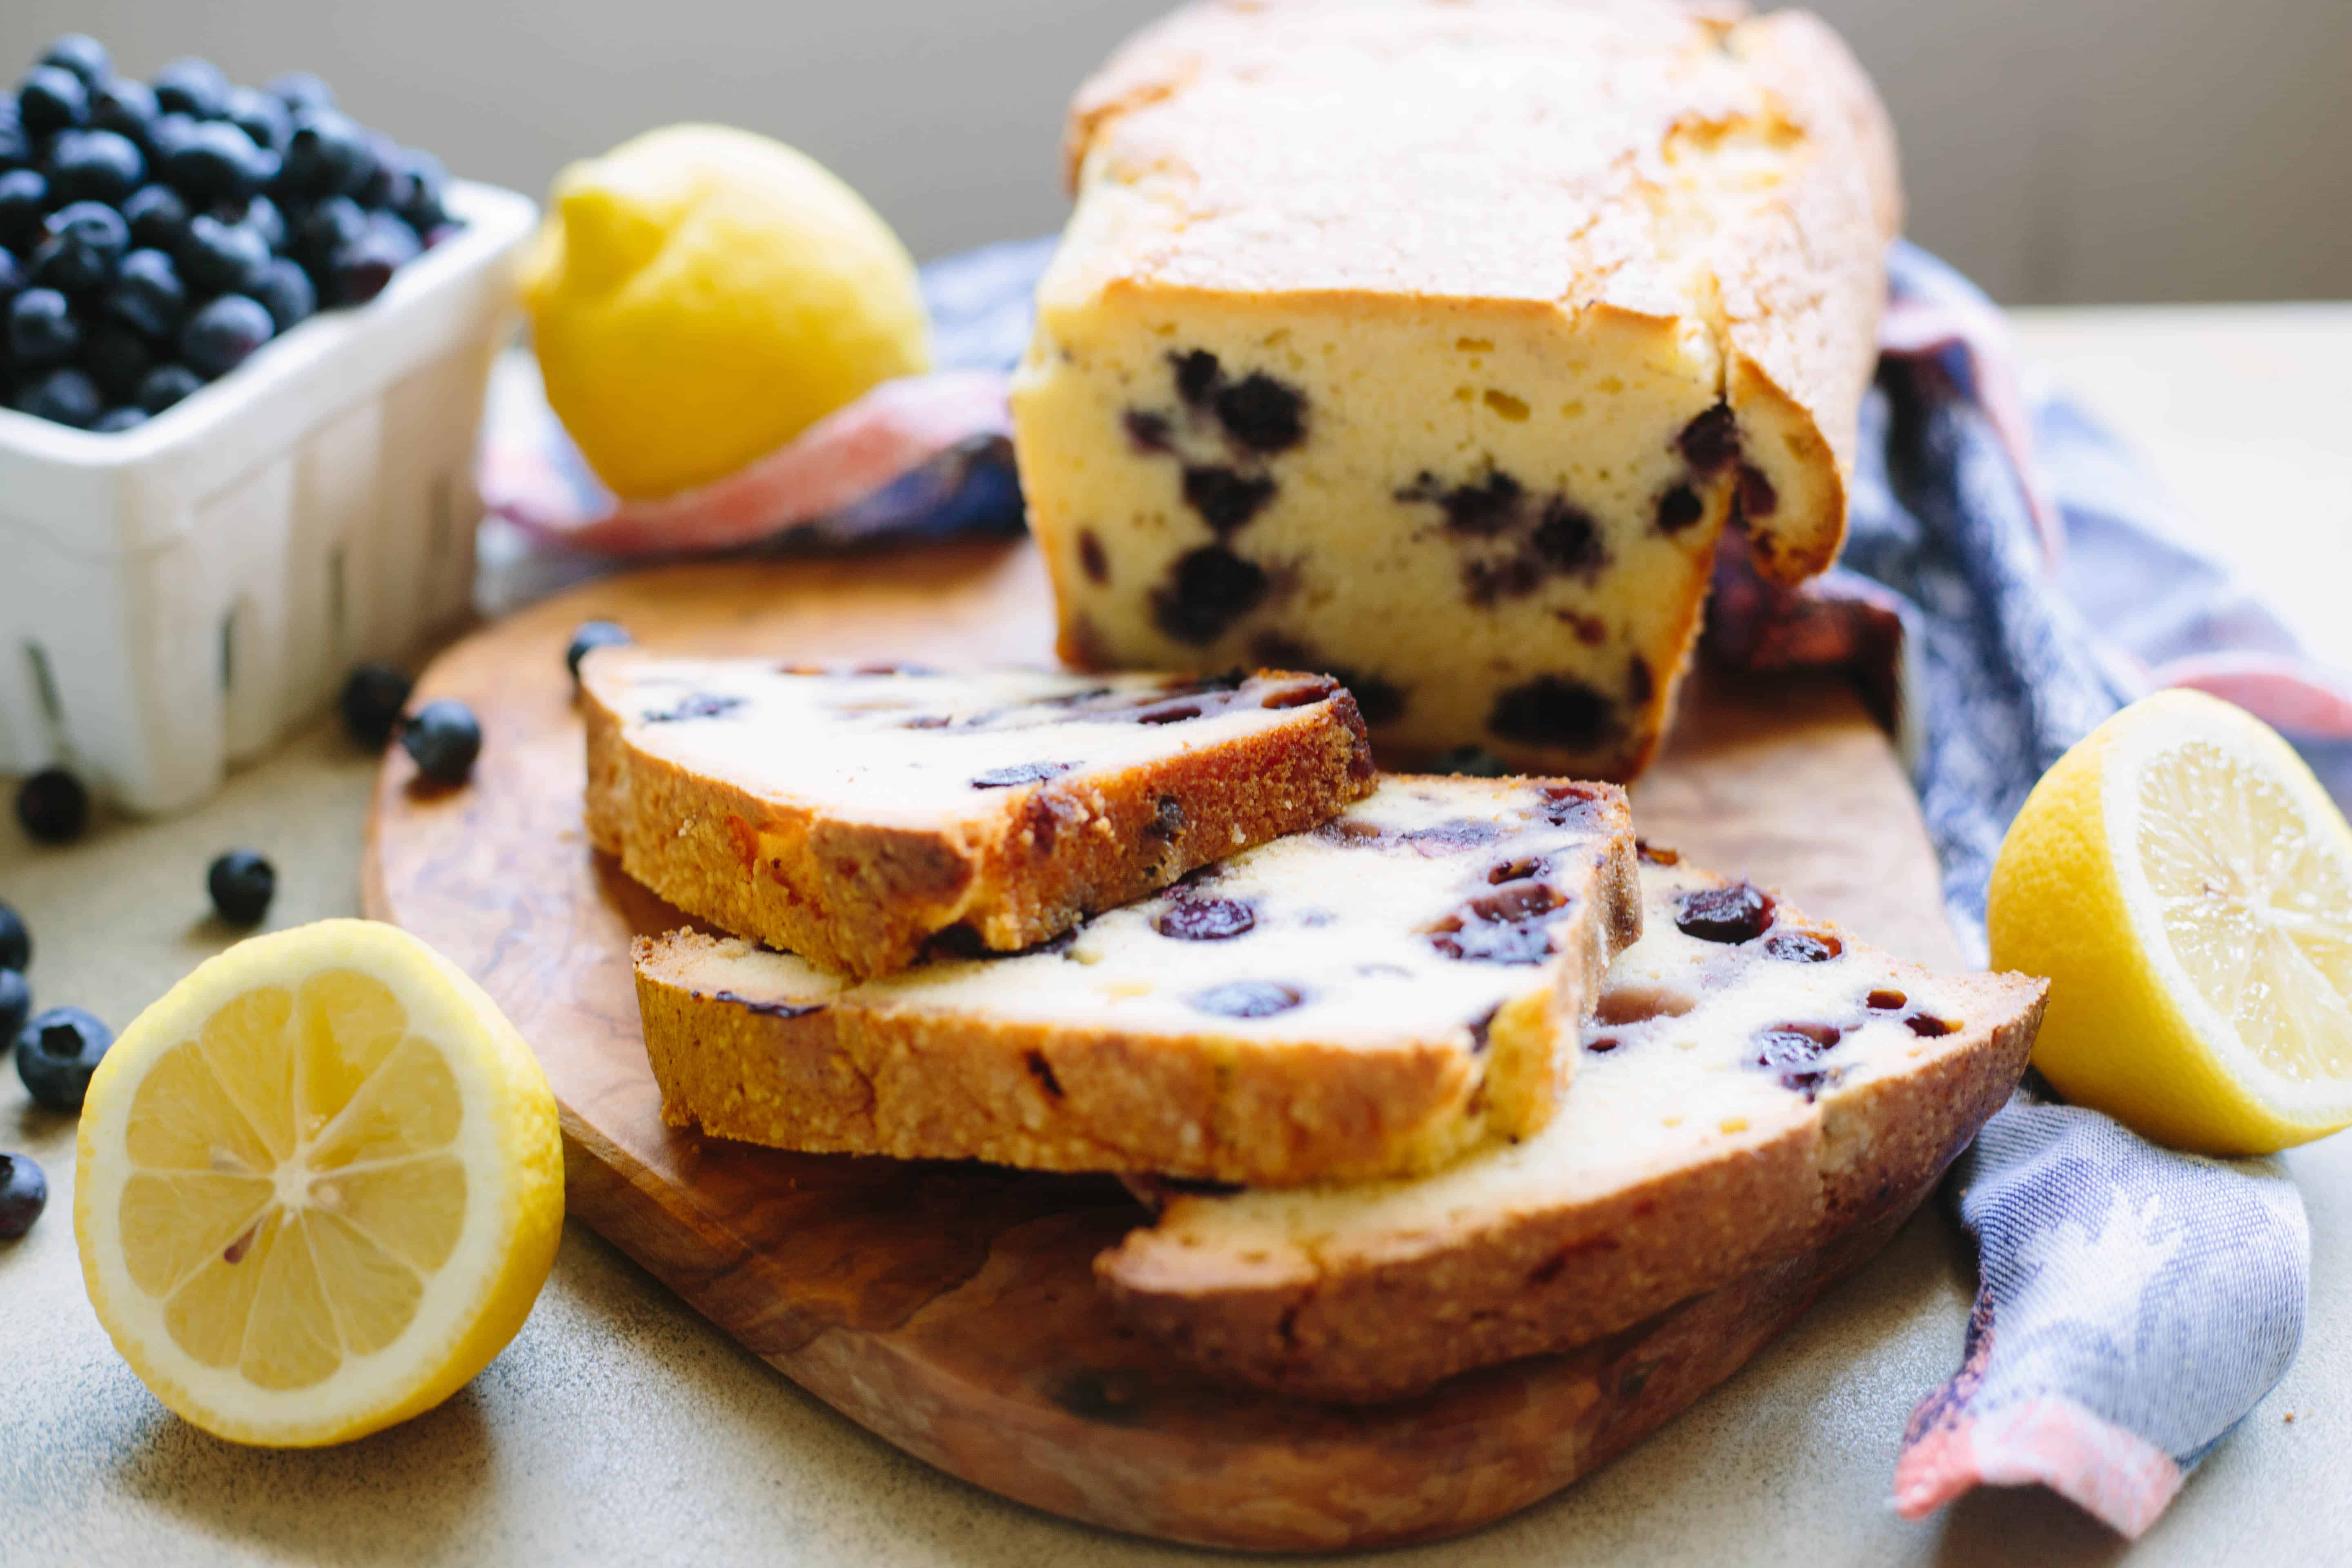 Three slices of lemon blueberry pound cake cut off a loaf on a wood cutting board.